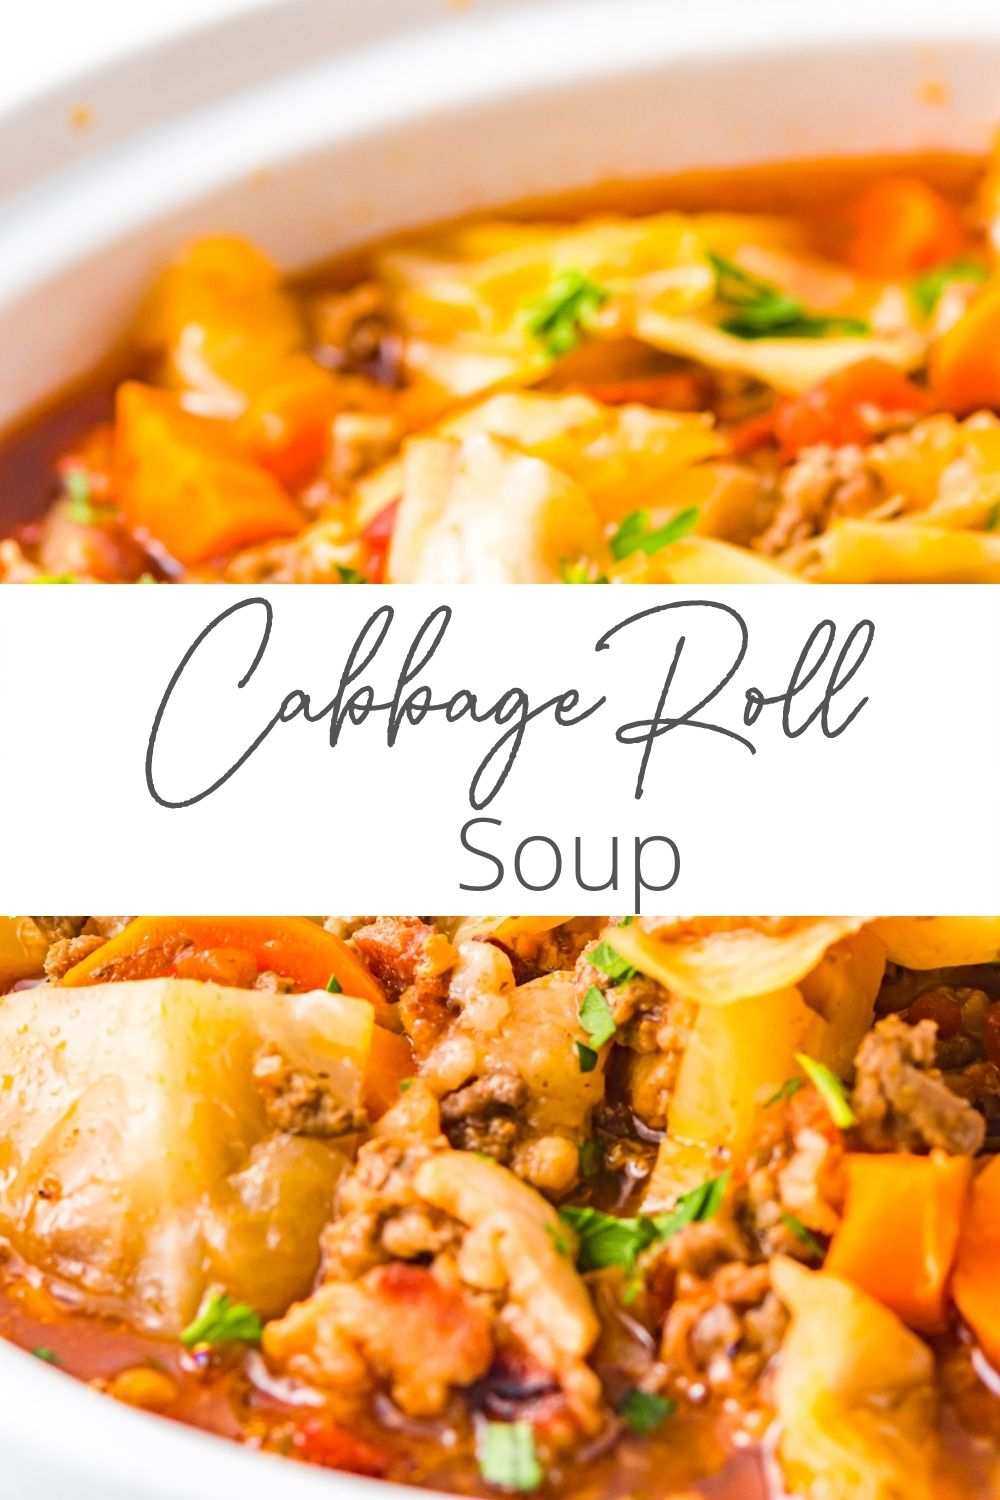 Cabbage Roll Soup with logo.